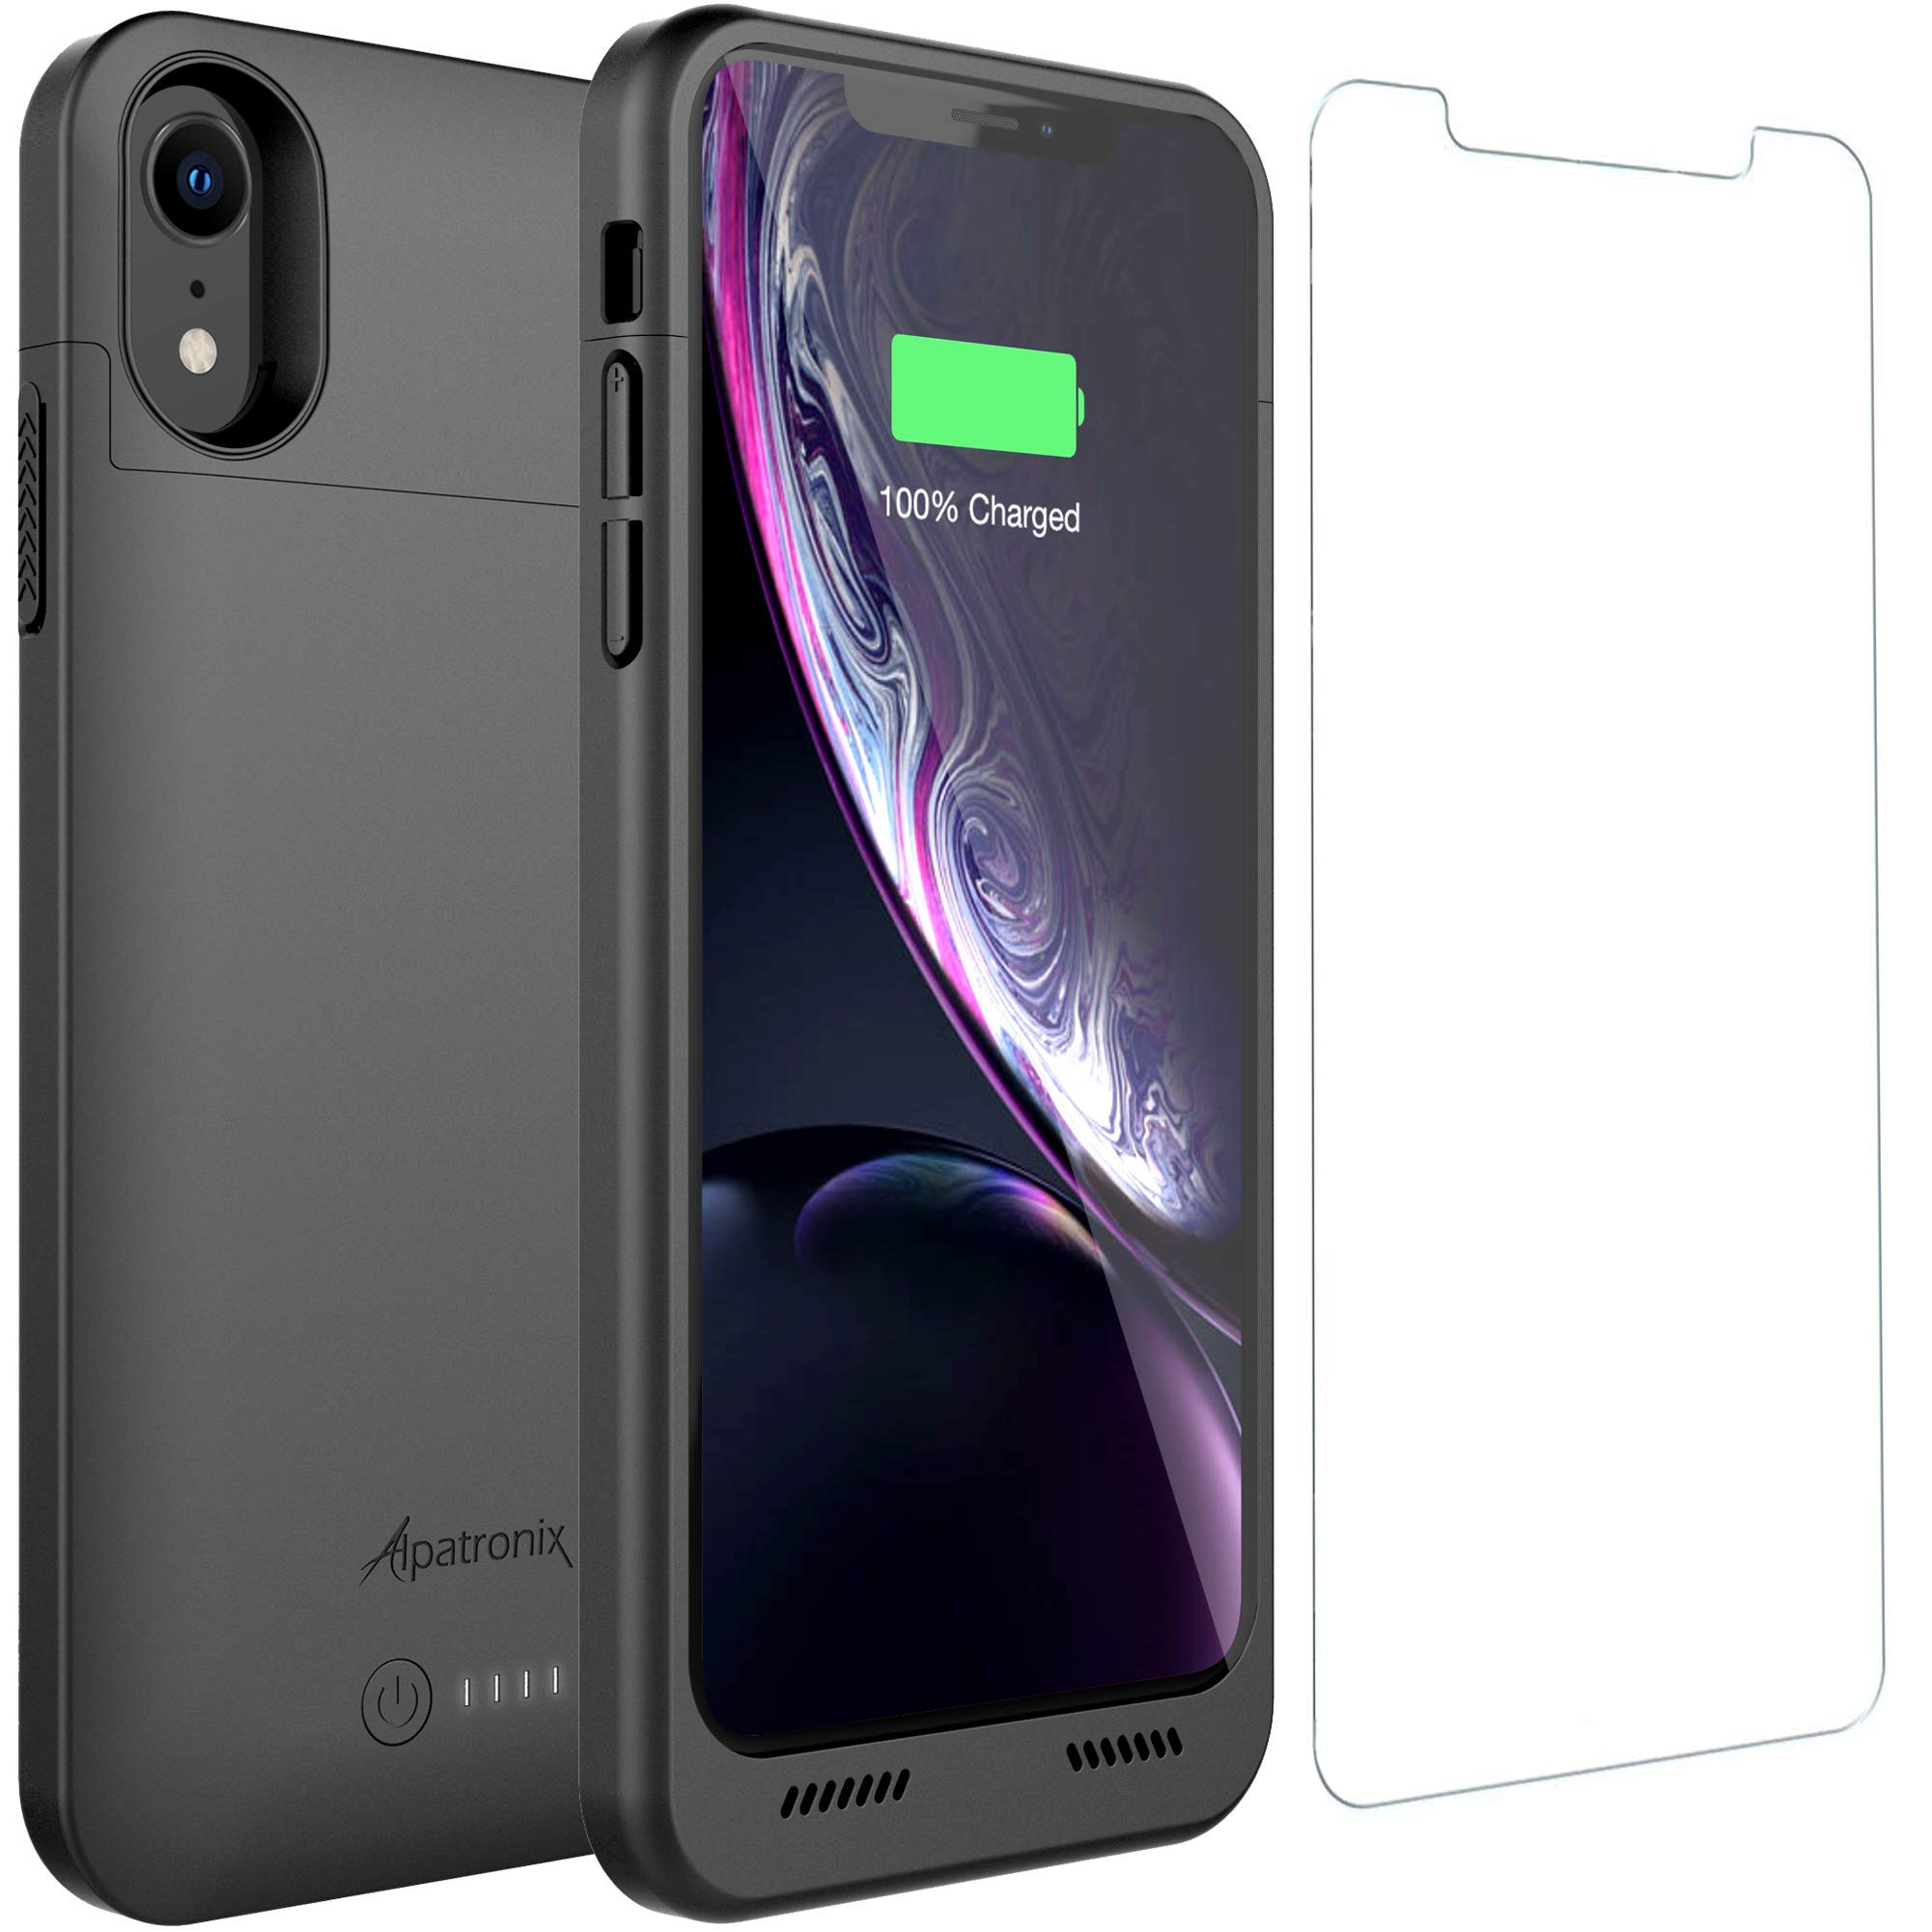 Alpatronix Battery Case for iPhone Xr, BXXr 5000mAh Qi Compatible Wireless Portable Power Bank and iPhone Xr Slim Charger, 50% Faster Charging Battery Pack, Original iPhone Lightning Chip - Black by Alpatronix